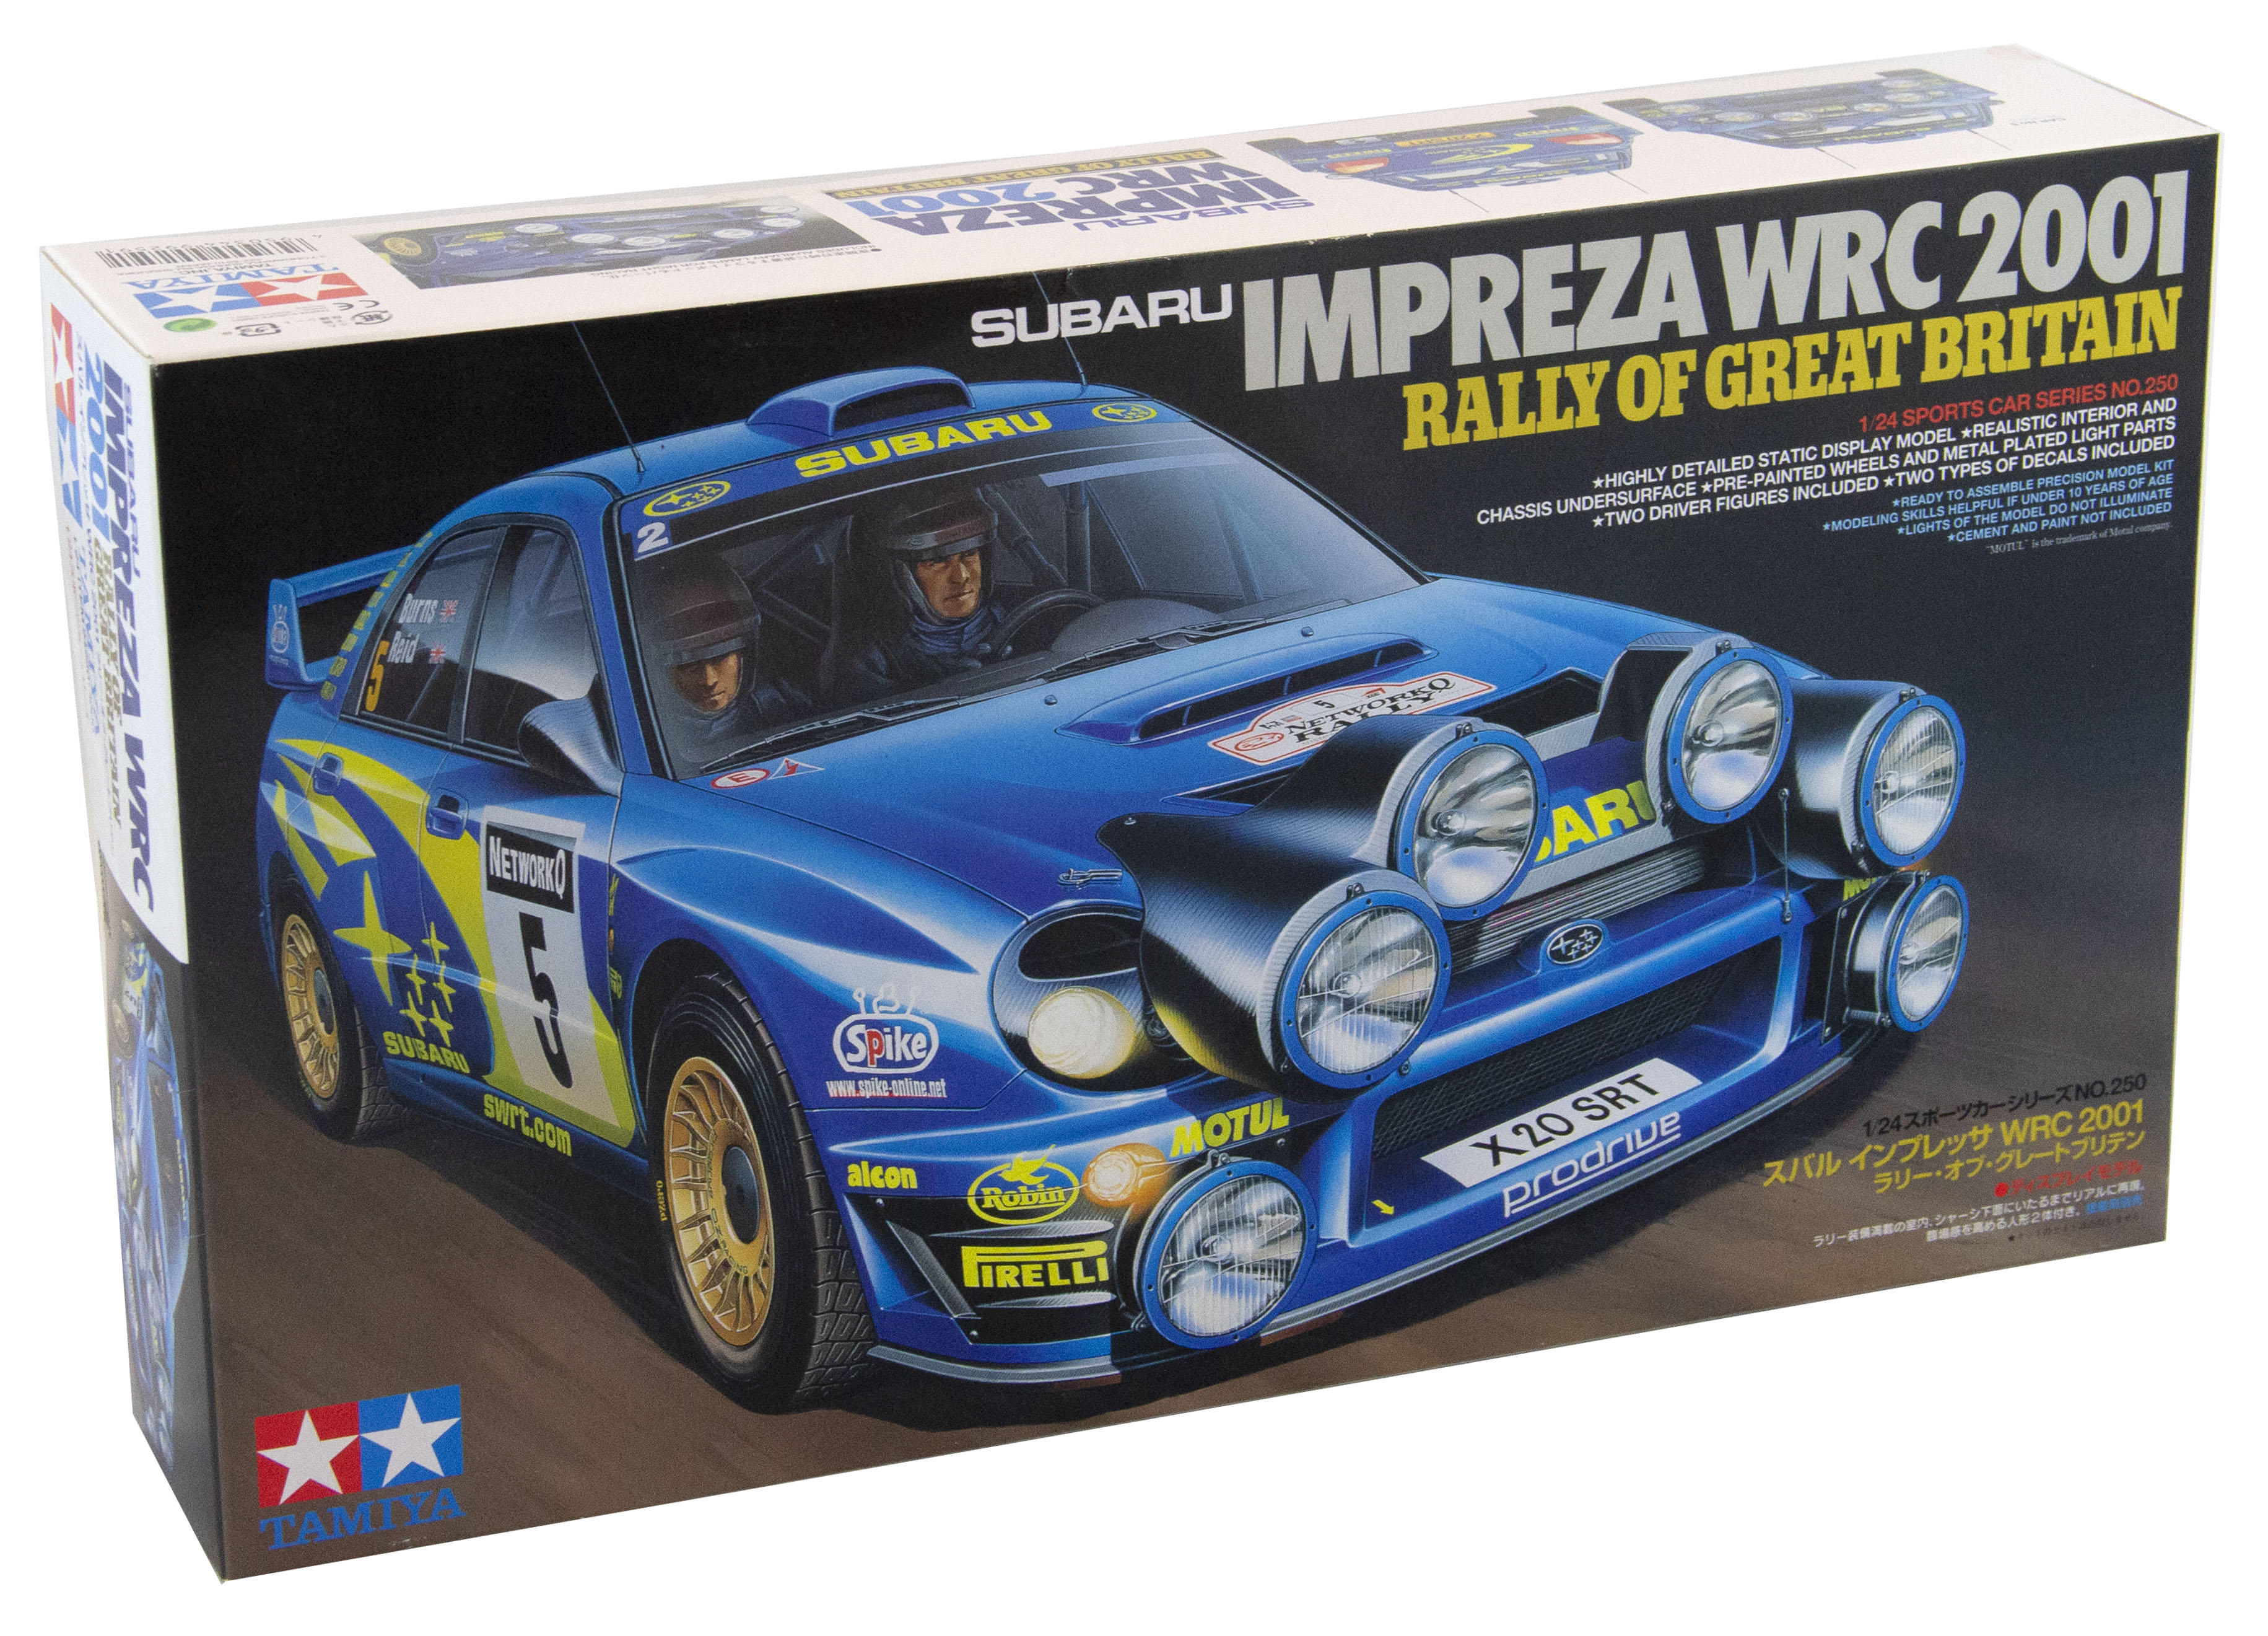 Kit Subaru Impreza Wrc 2001 Rally Of Great Britain 1/24